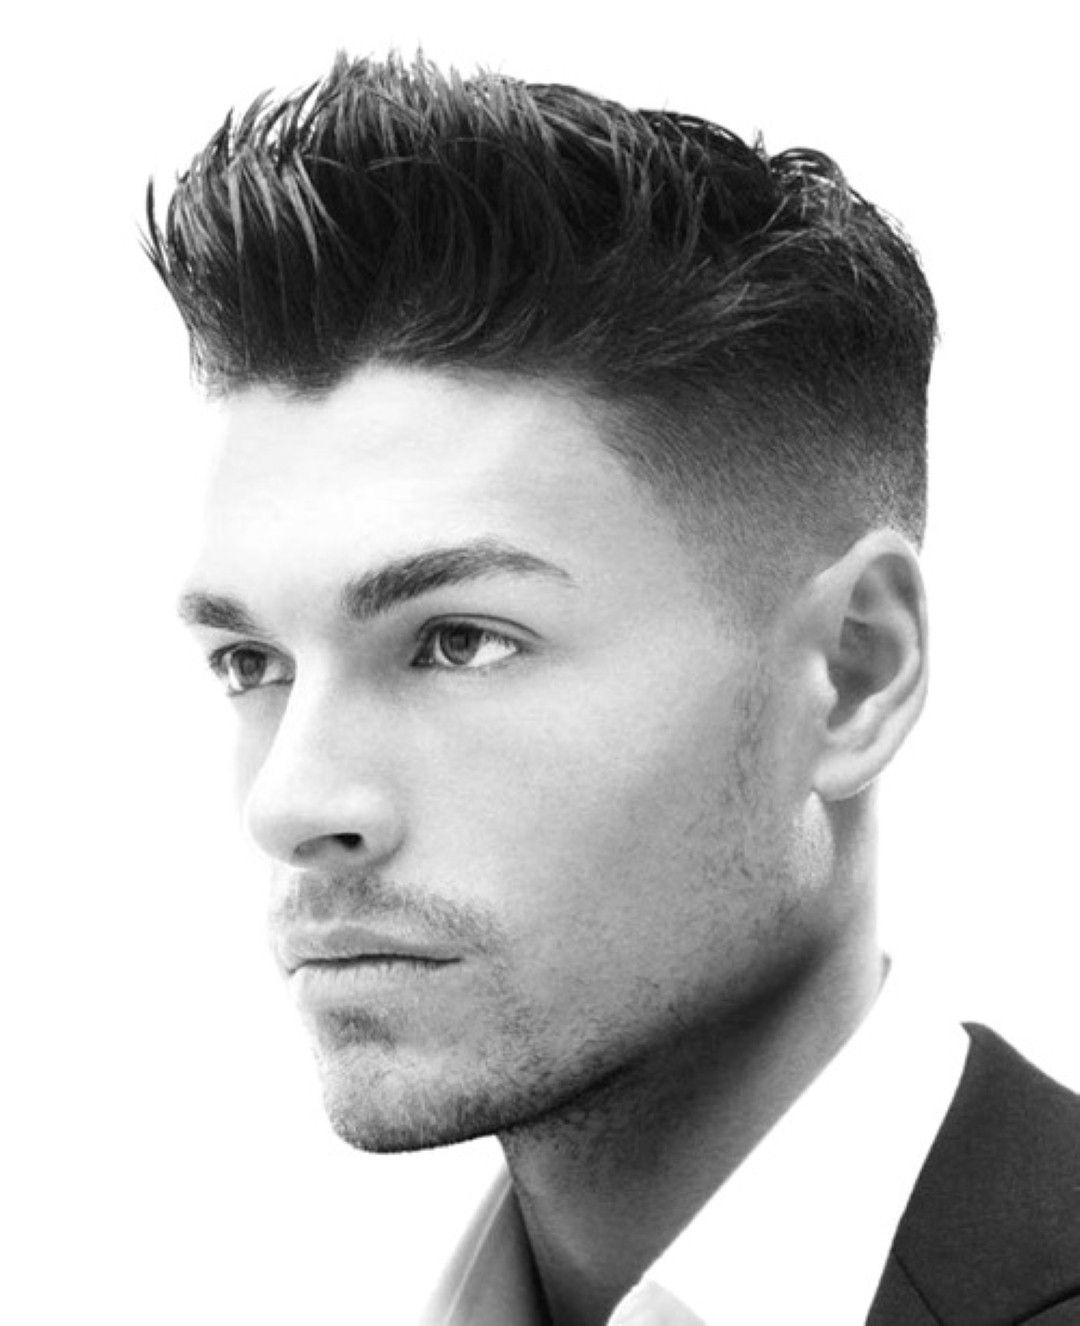 2015 Short Hairstyles For Men Hairstyles For Guys In 2015 Simple Hairstyle Ideas For Women And